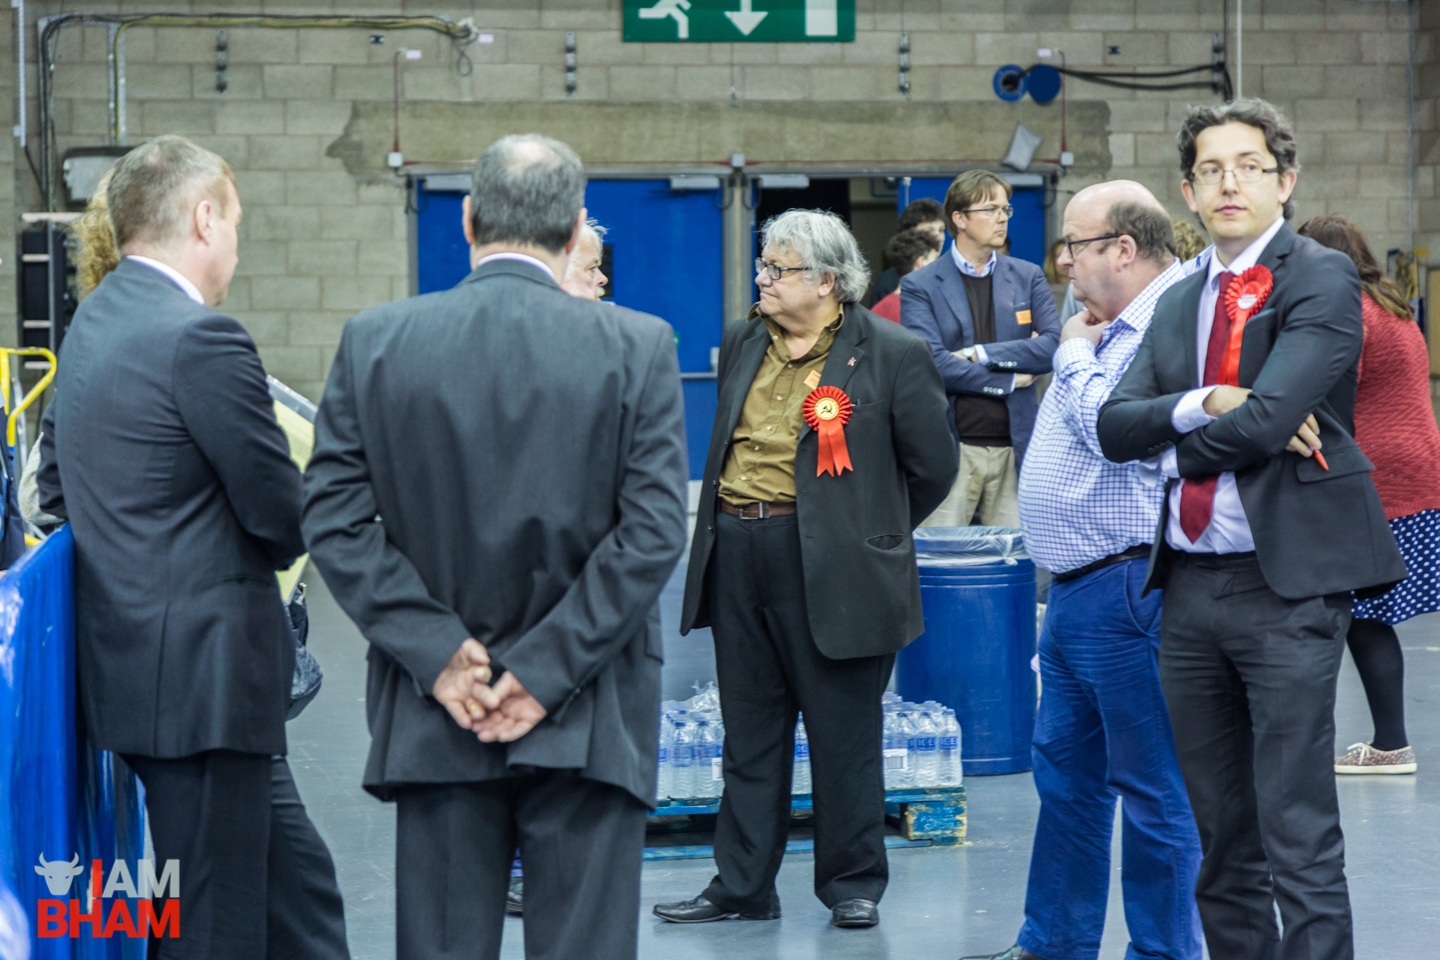 Communist candidate Graham Stevenson chats to supporters at the West Midlands Mayoral Election count in Birmingham